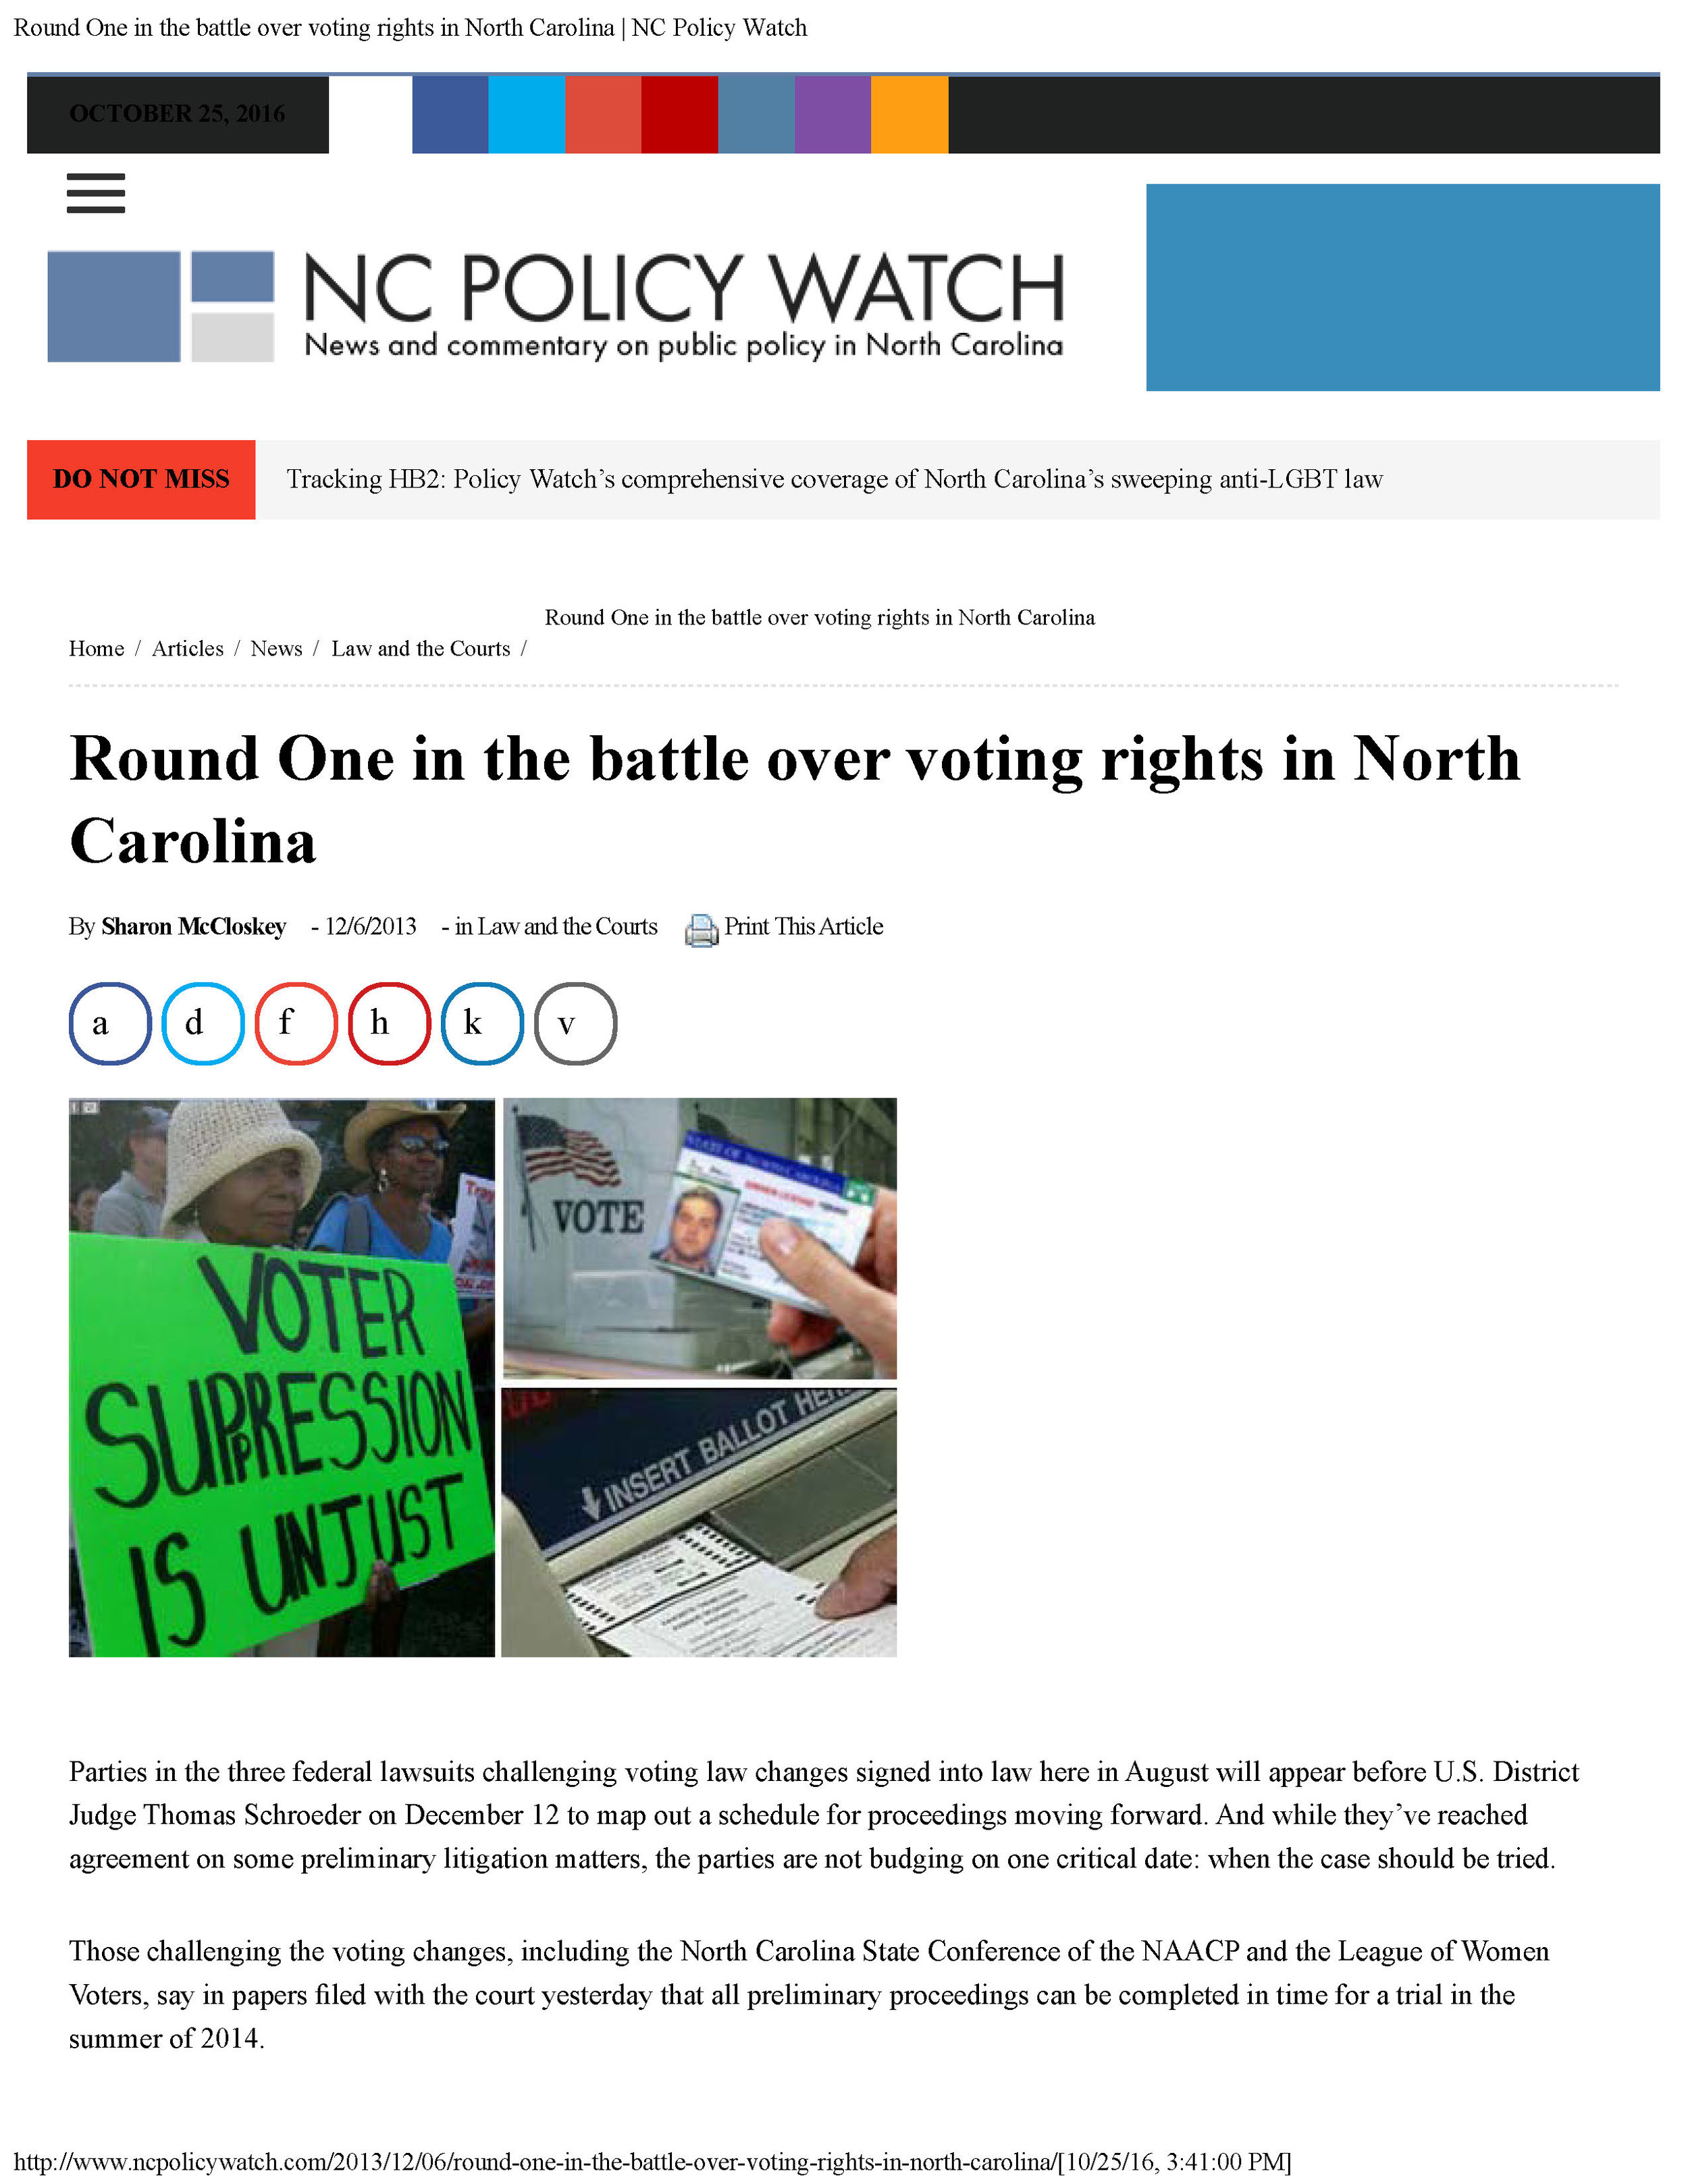 Sharon McCloskey - Round One in the battle over voting rights in North Carolina - NC Policy Watch_Page_1.jpg